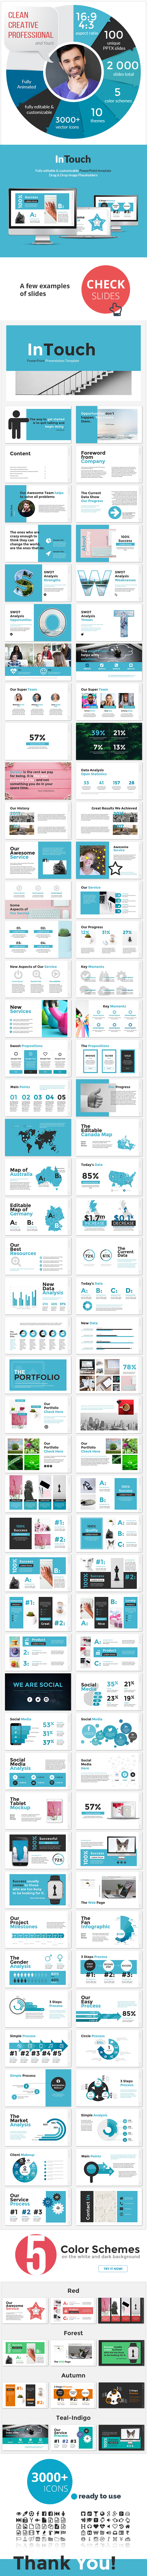 InTouch Multipurpose PowerPoint Presentation Template - PowerPoint Templates Presentation Templates